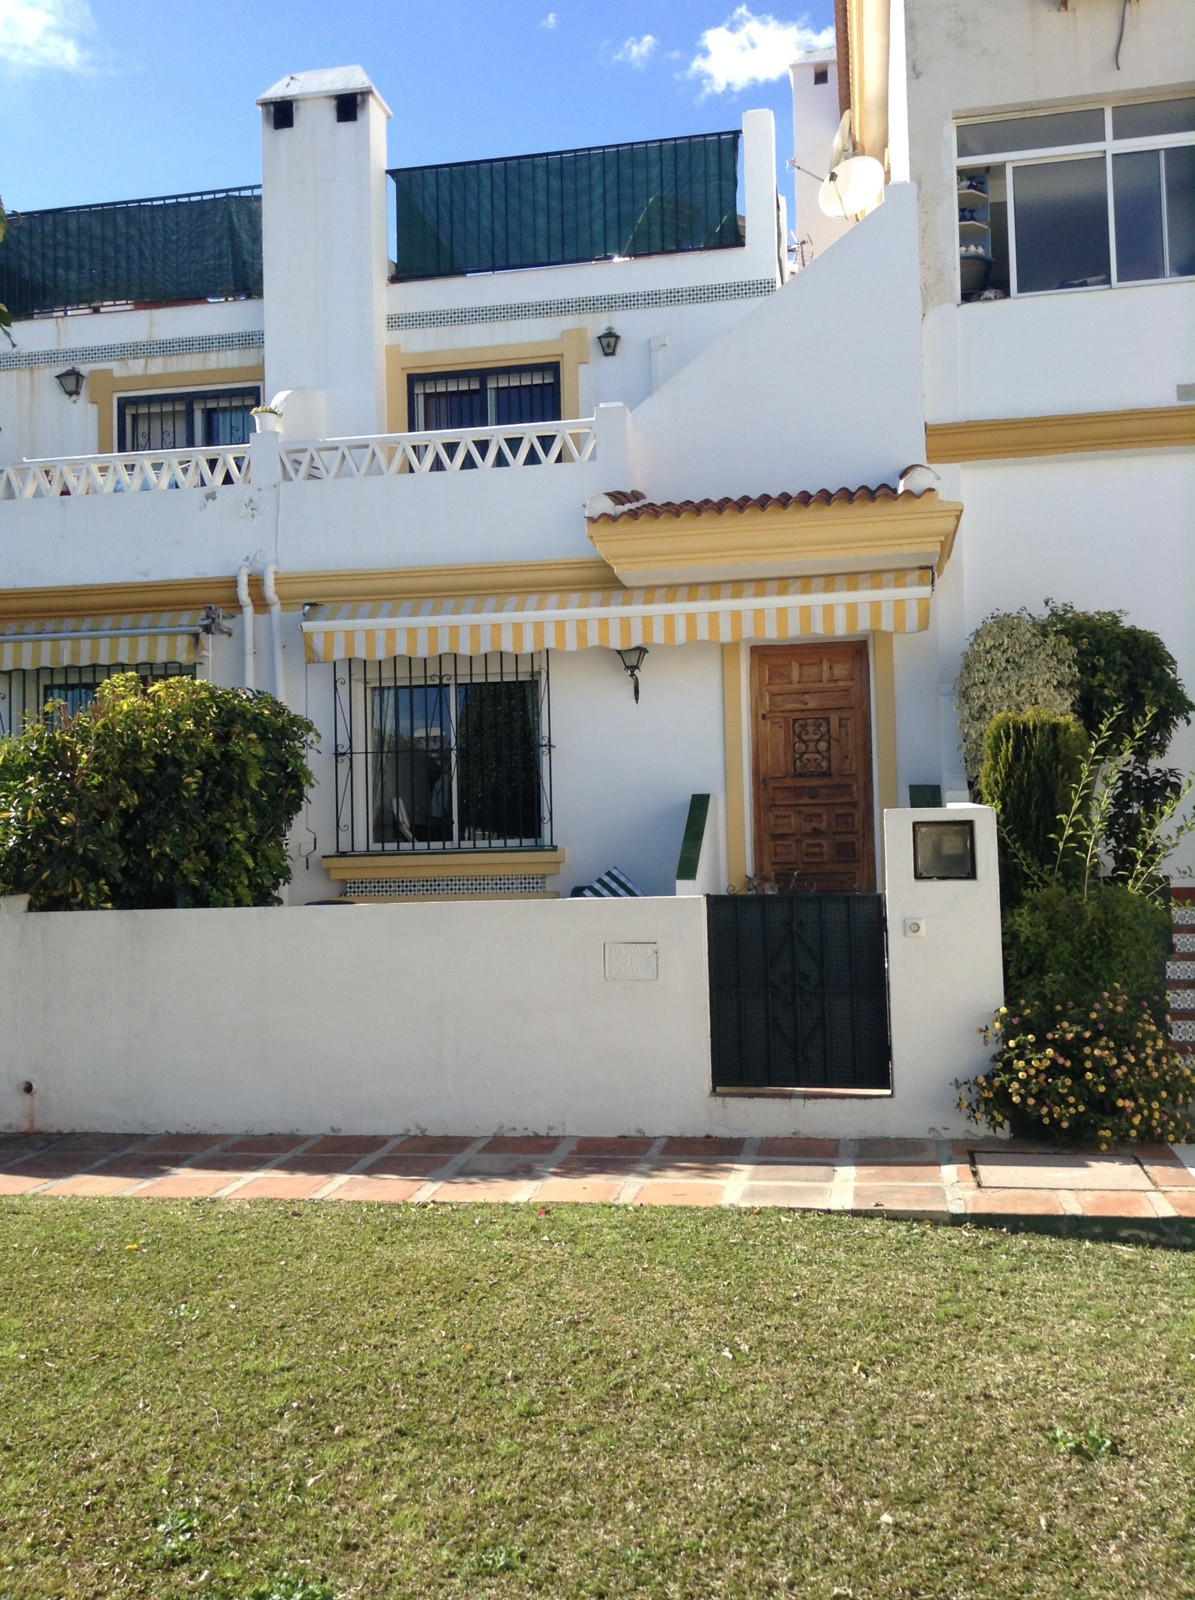 Lovely townhouse in Montemar, easy walking distance to all amenities, beach (650 m) Pinillo Train st,Spain